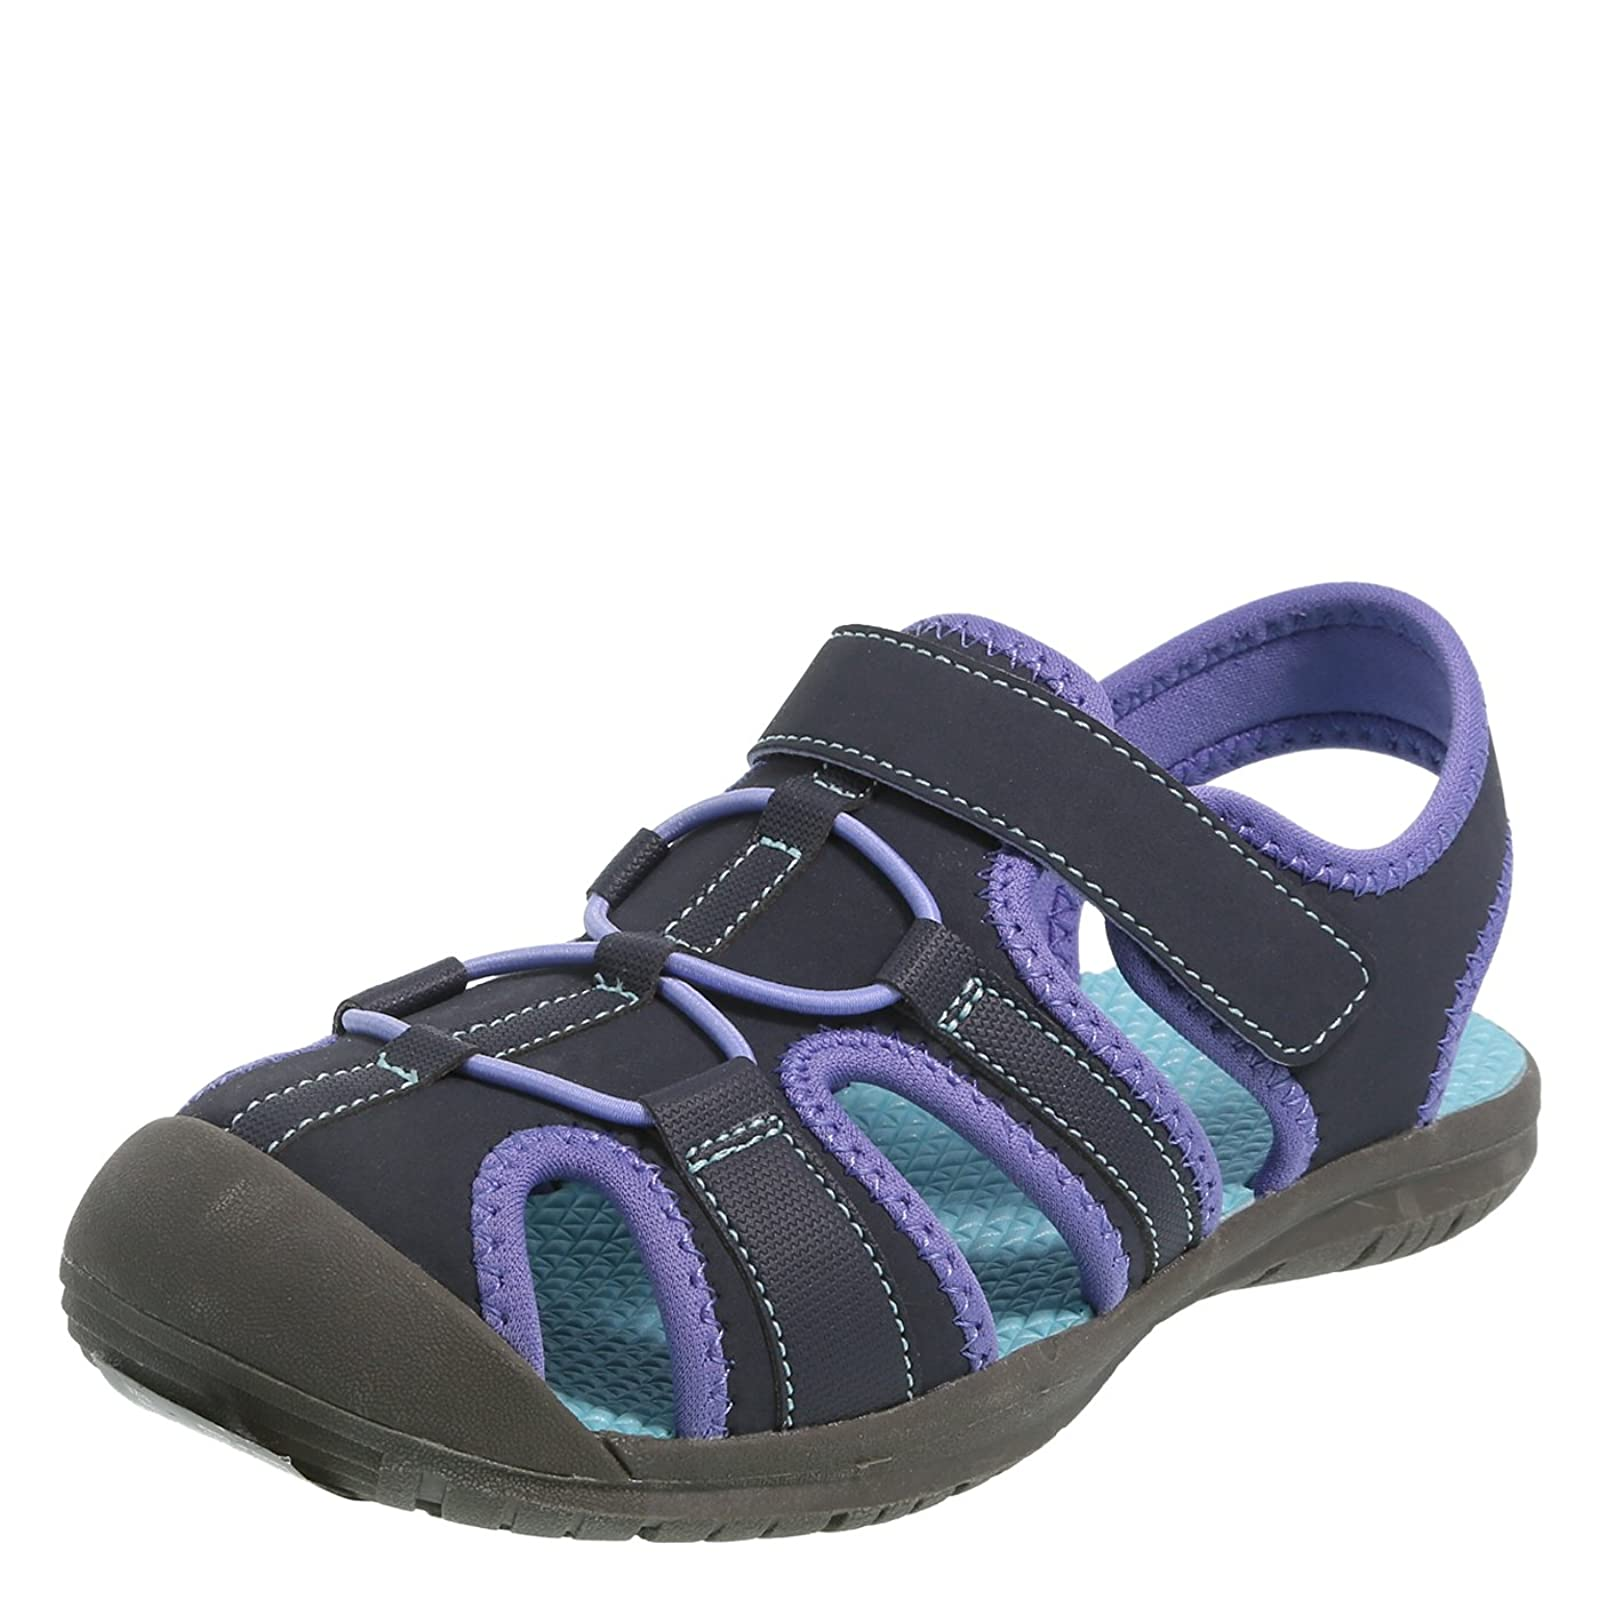 Rugged Outback Girls' Marina Bumptoe Sandal 7 M US - 4